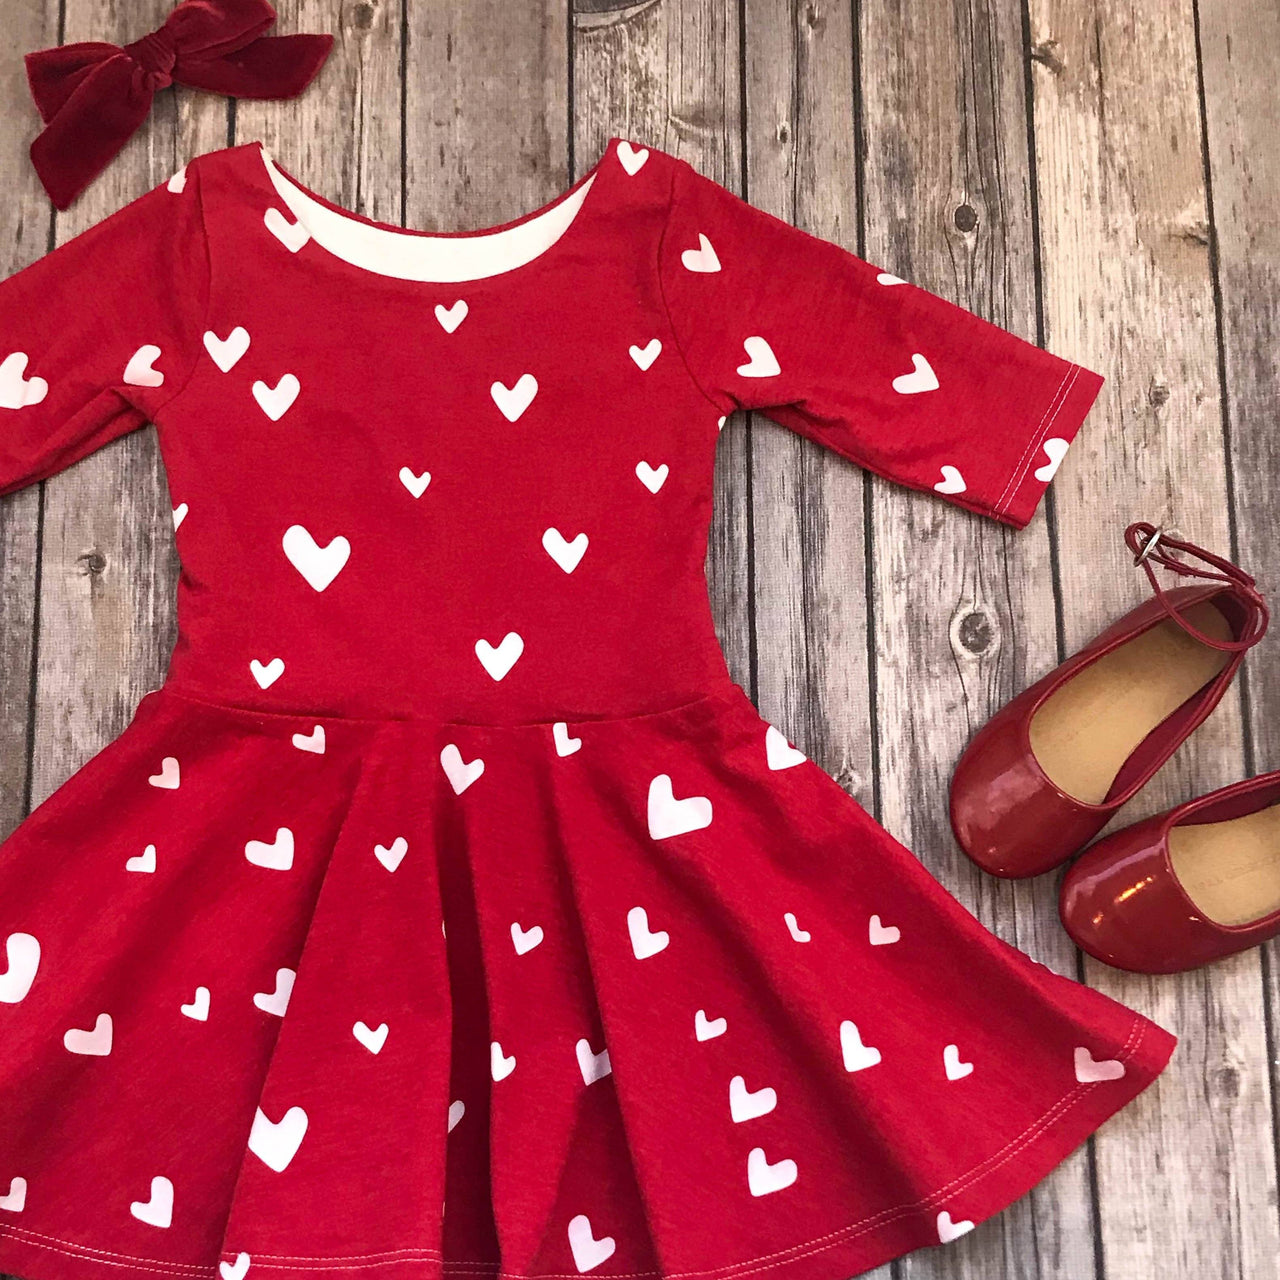 Red Heart Twirl Dress - Elizabeth's Closet